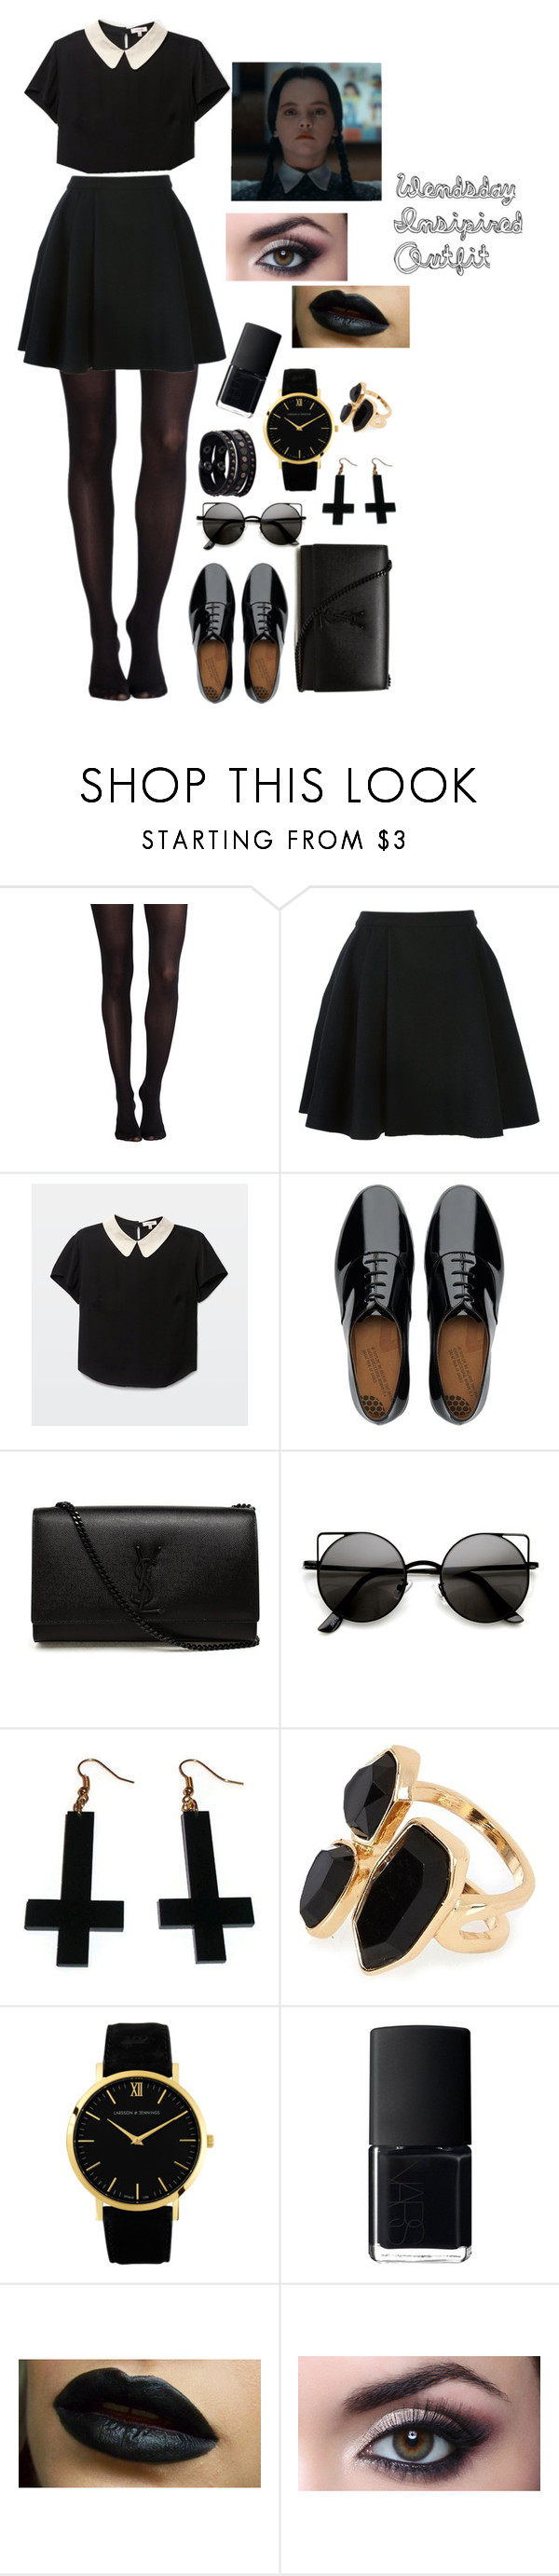 wednesday addams outfit costume in 2018 costumes. Black Bedroom Furniture Sets. Home Design Ideas